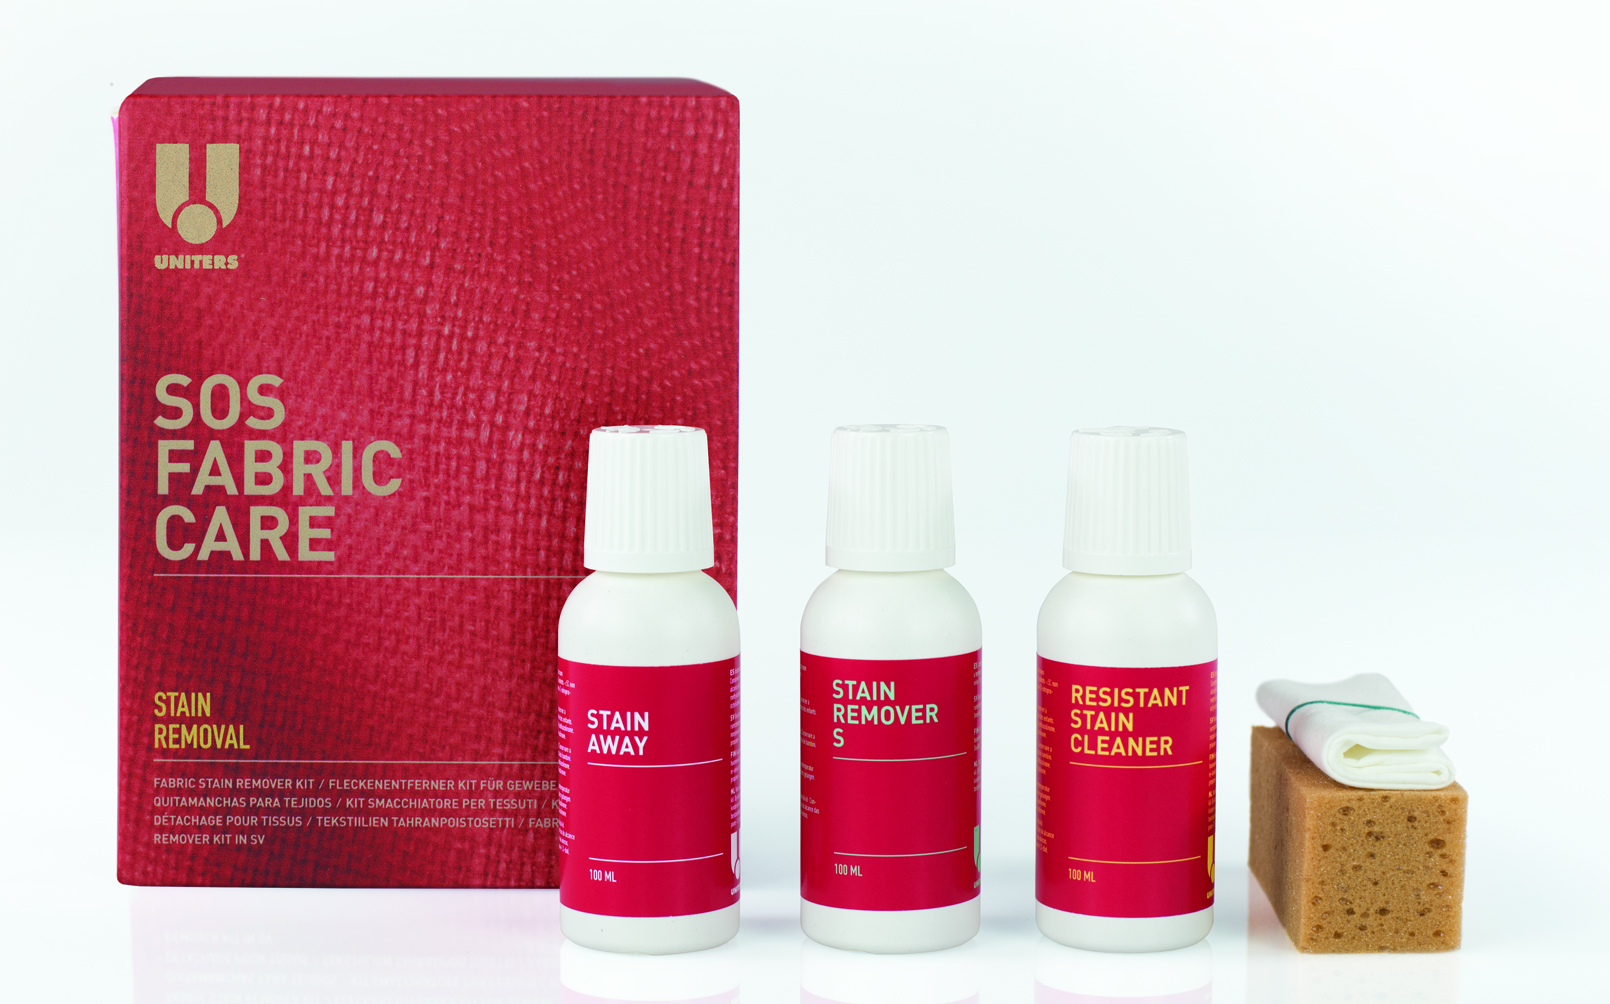 SOS FABRIC CARE KIT